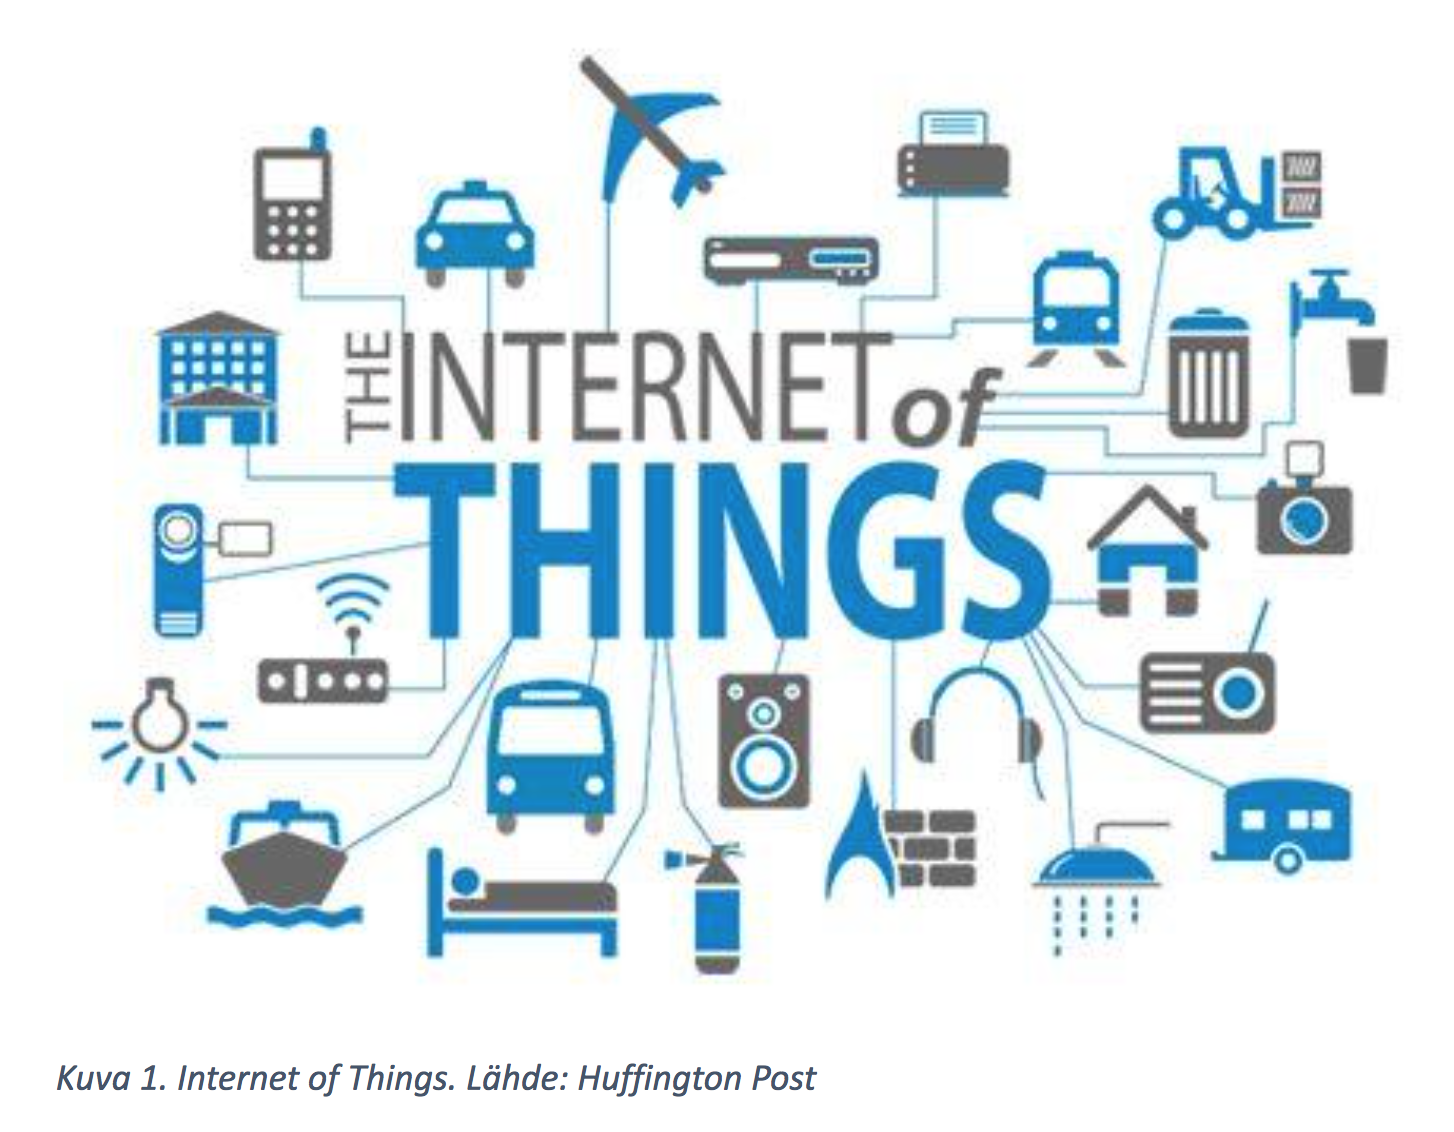 What is IOT concept & how do you relate it with business intelligence & analytics